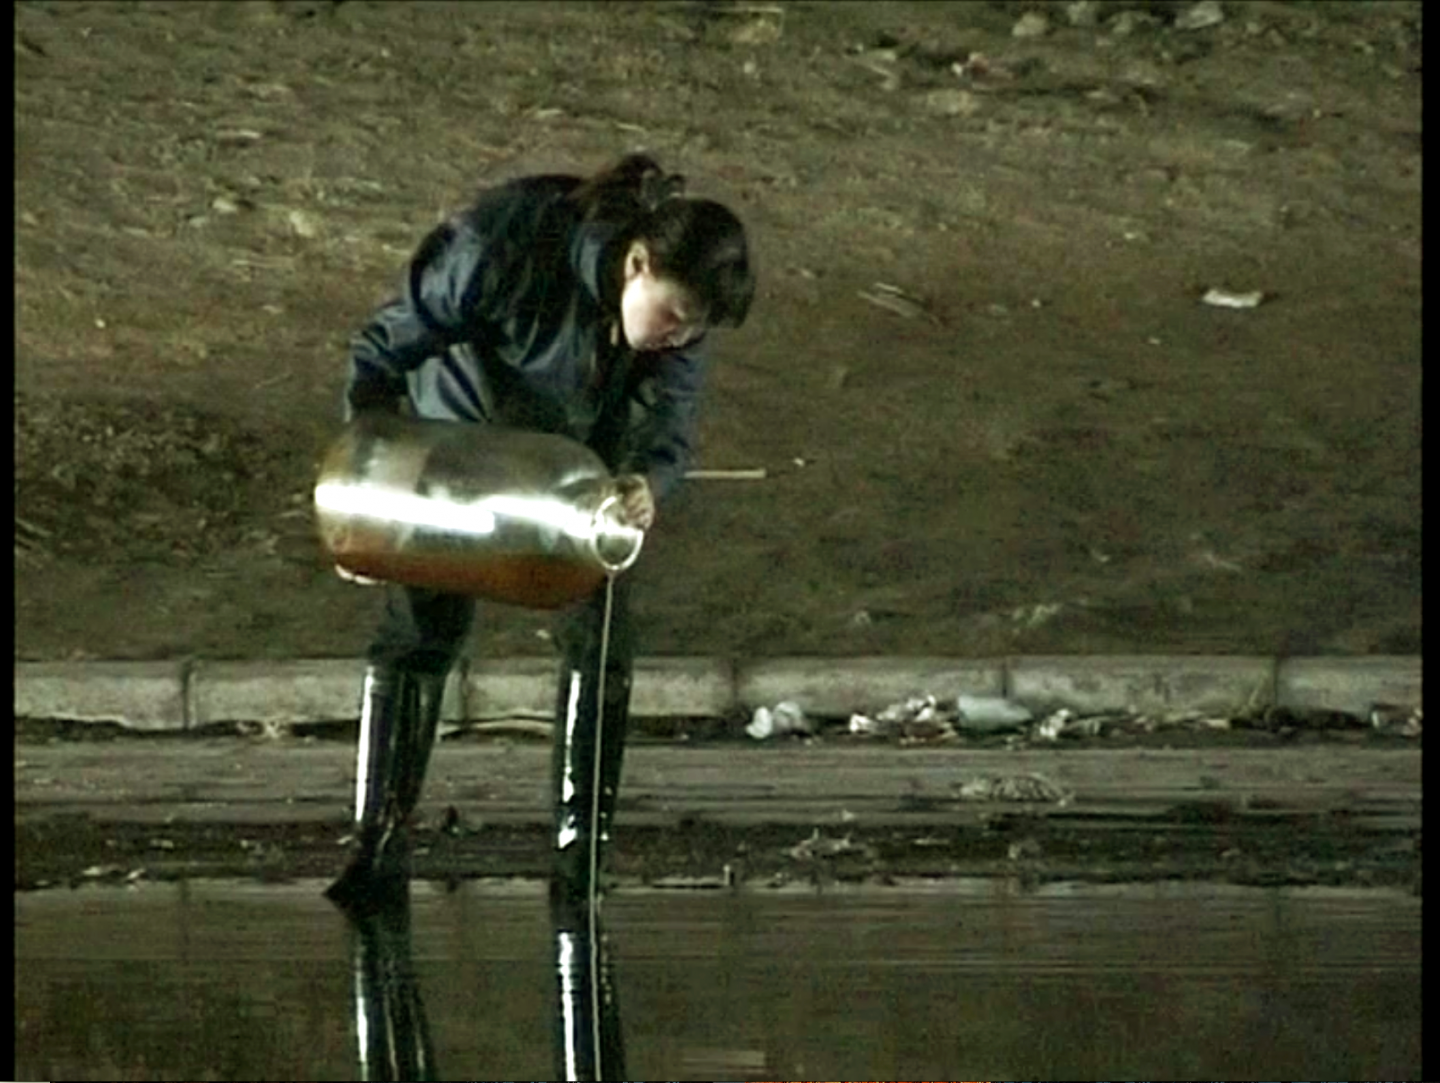 Peng Yu, Exile, 2000. Video stills. Photo courtesy of the artist.